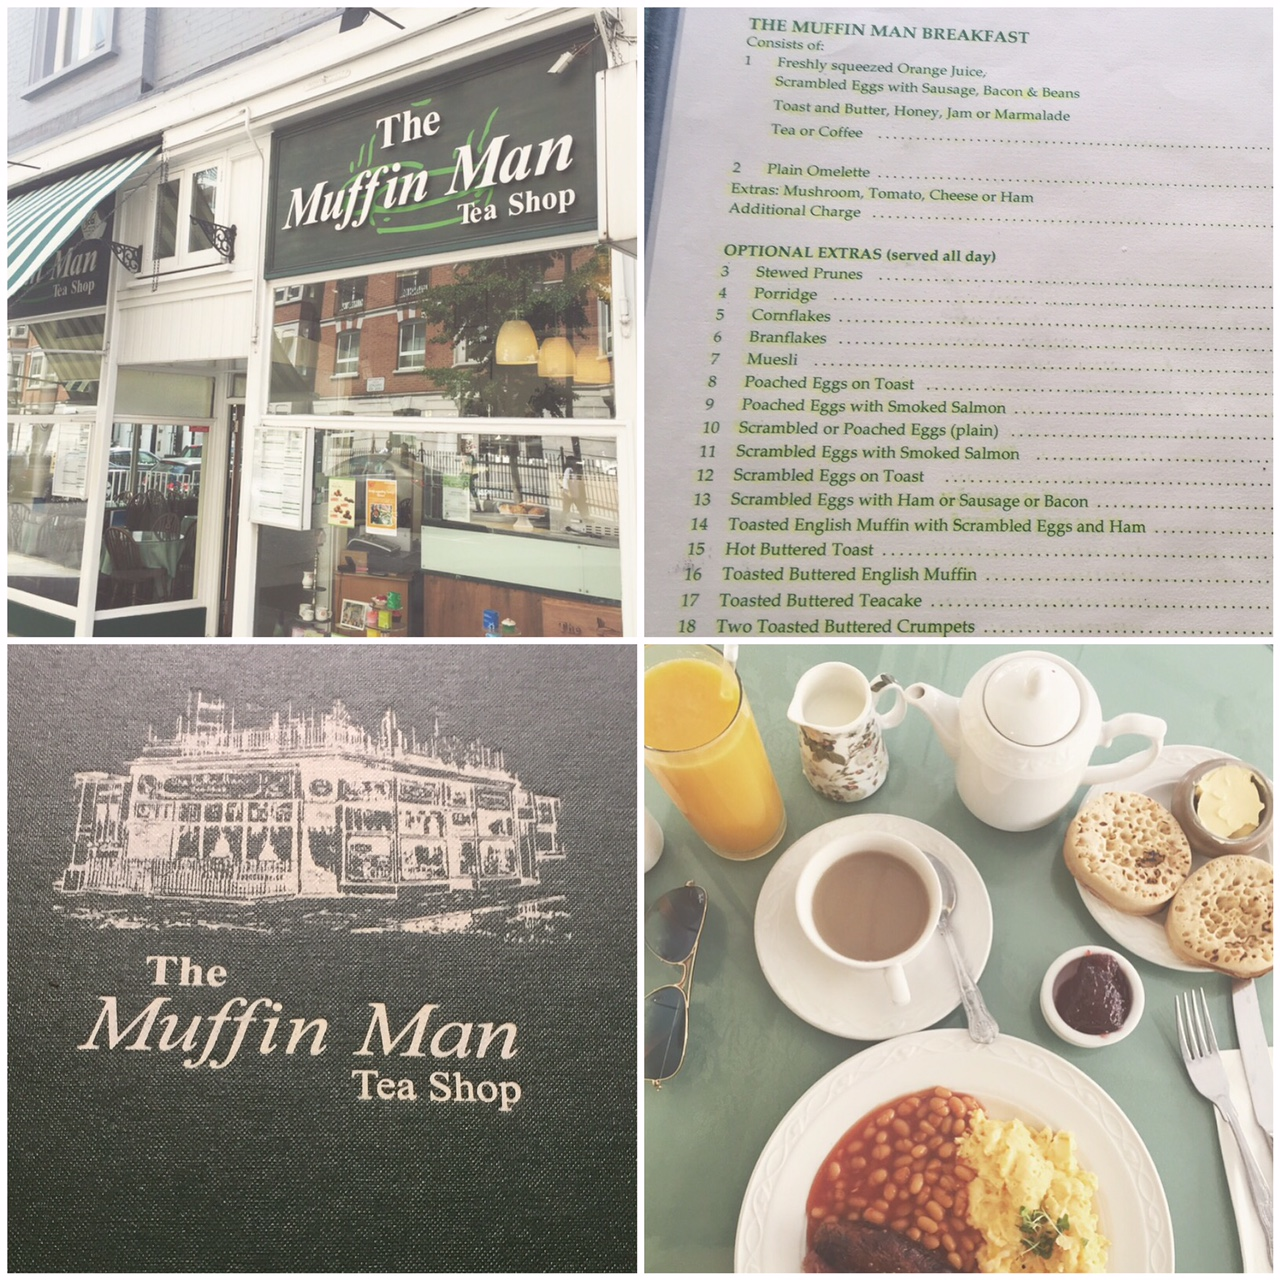 The Muffin Man Tea Shop